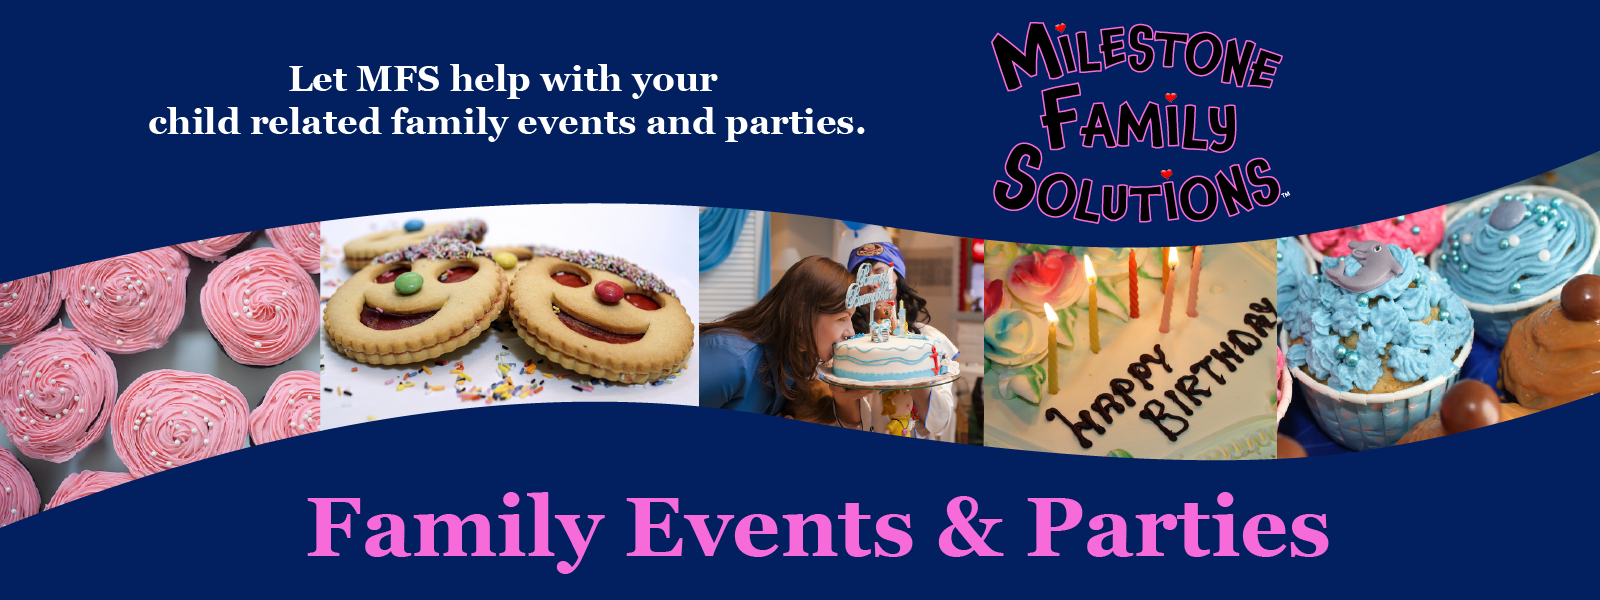 Family Events & Parties Header